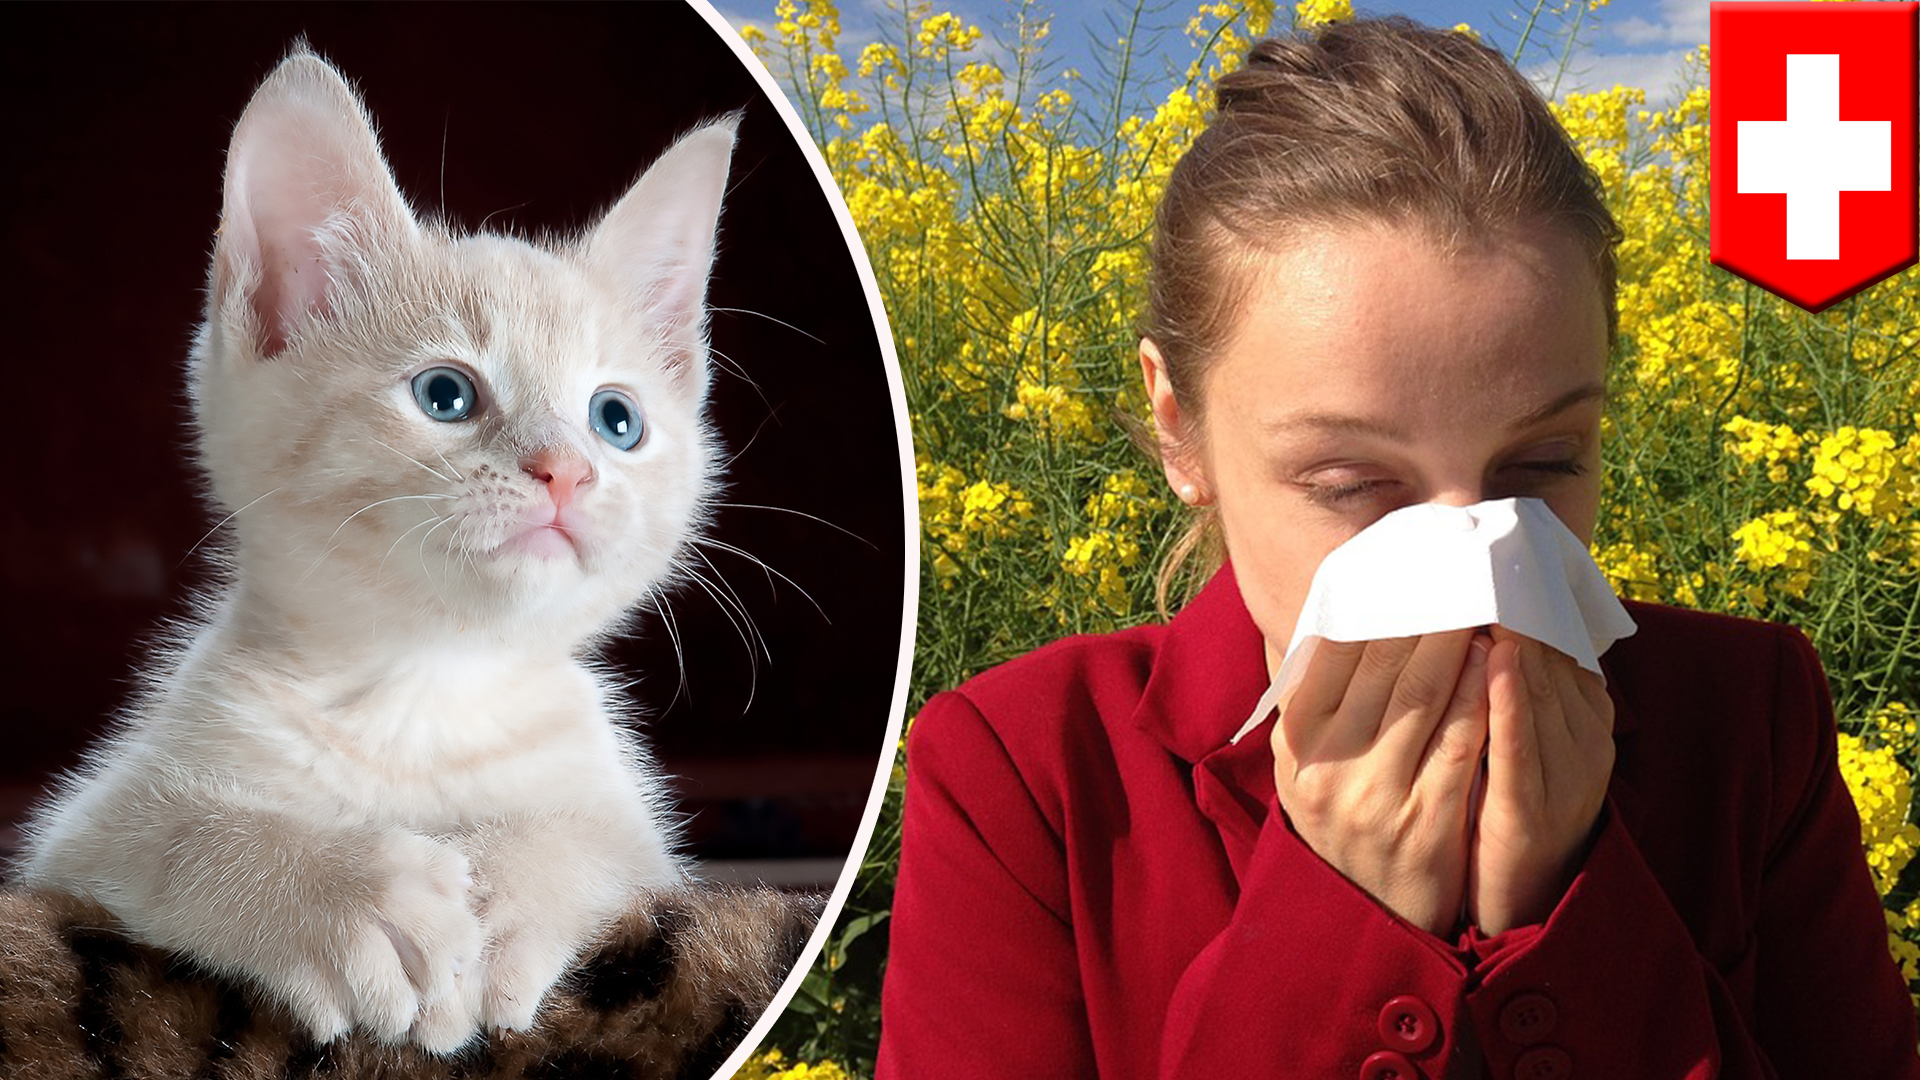 Scientists develop vaccine to help people with cat allergies